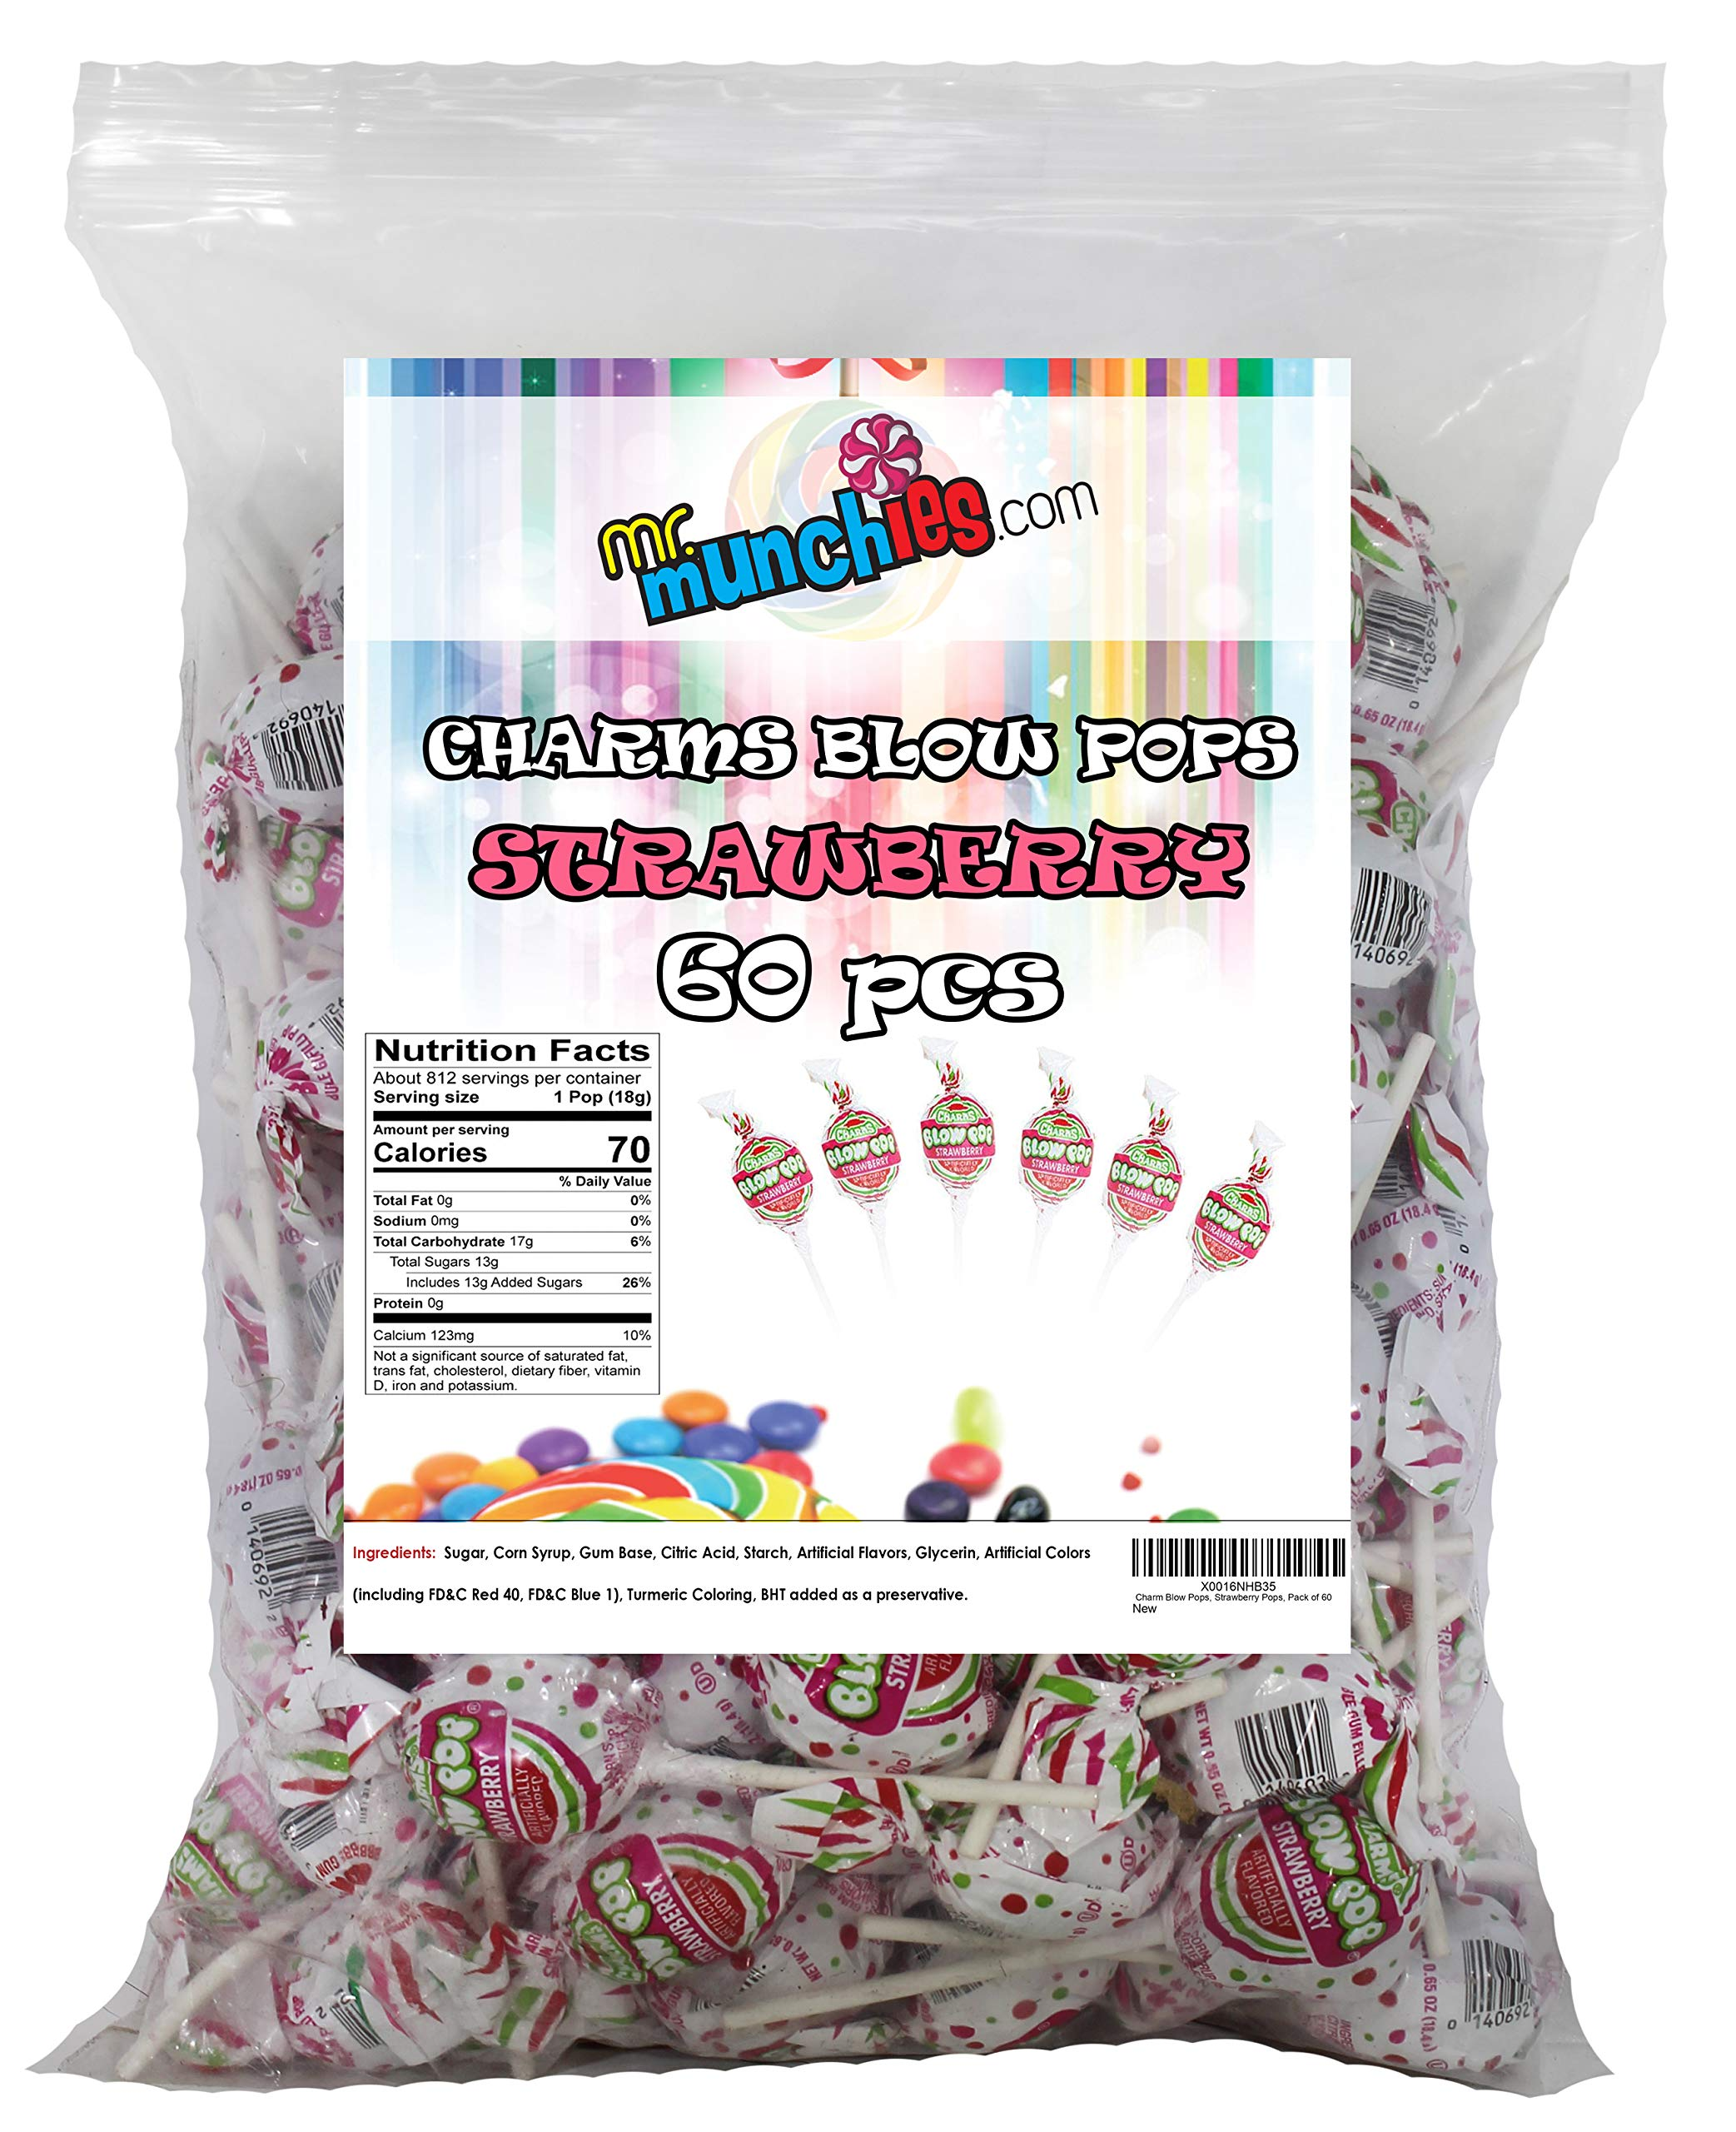 Charm Blow Pops, Strawberry Pops, Pack of 60 by Blow Pops